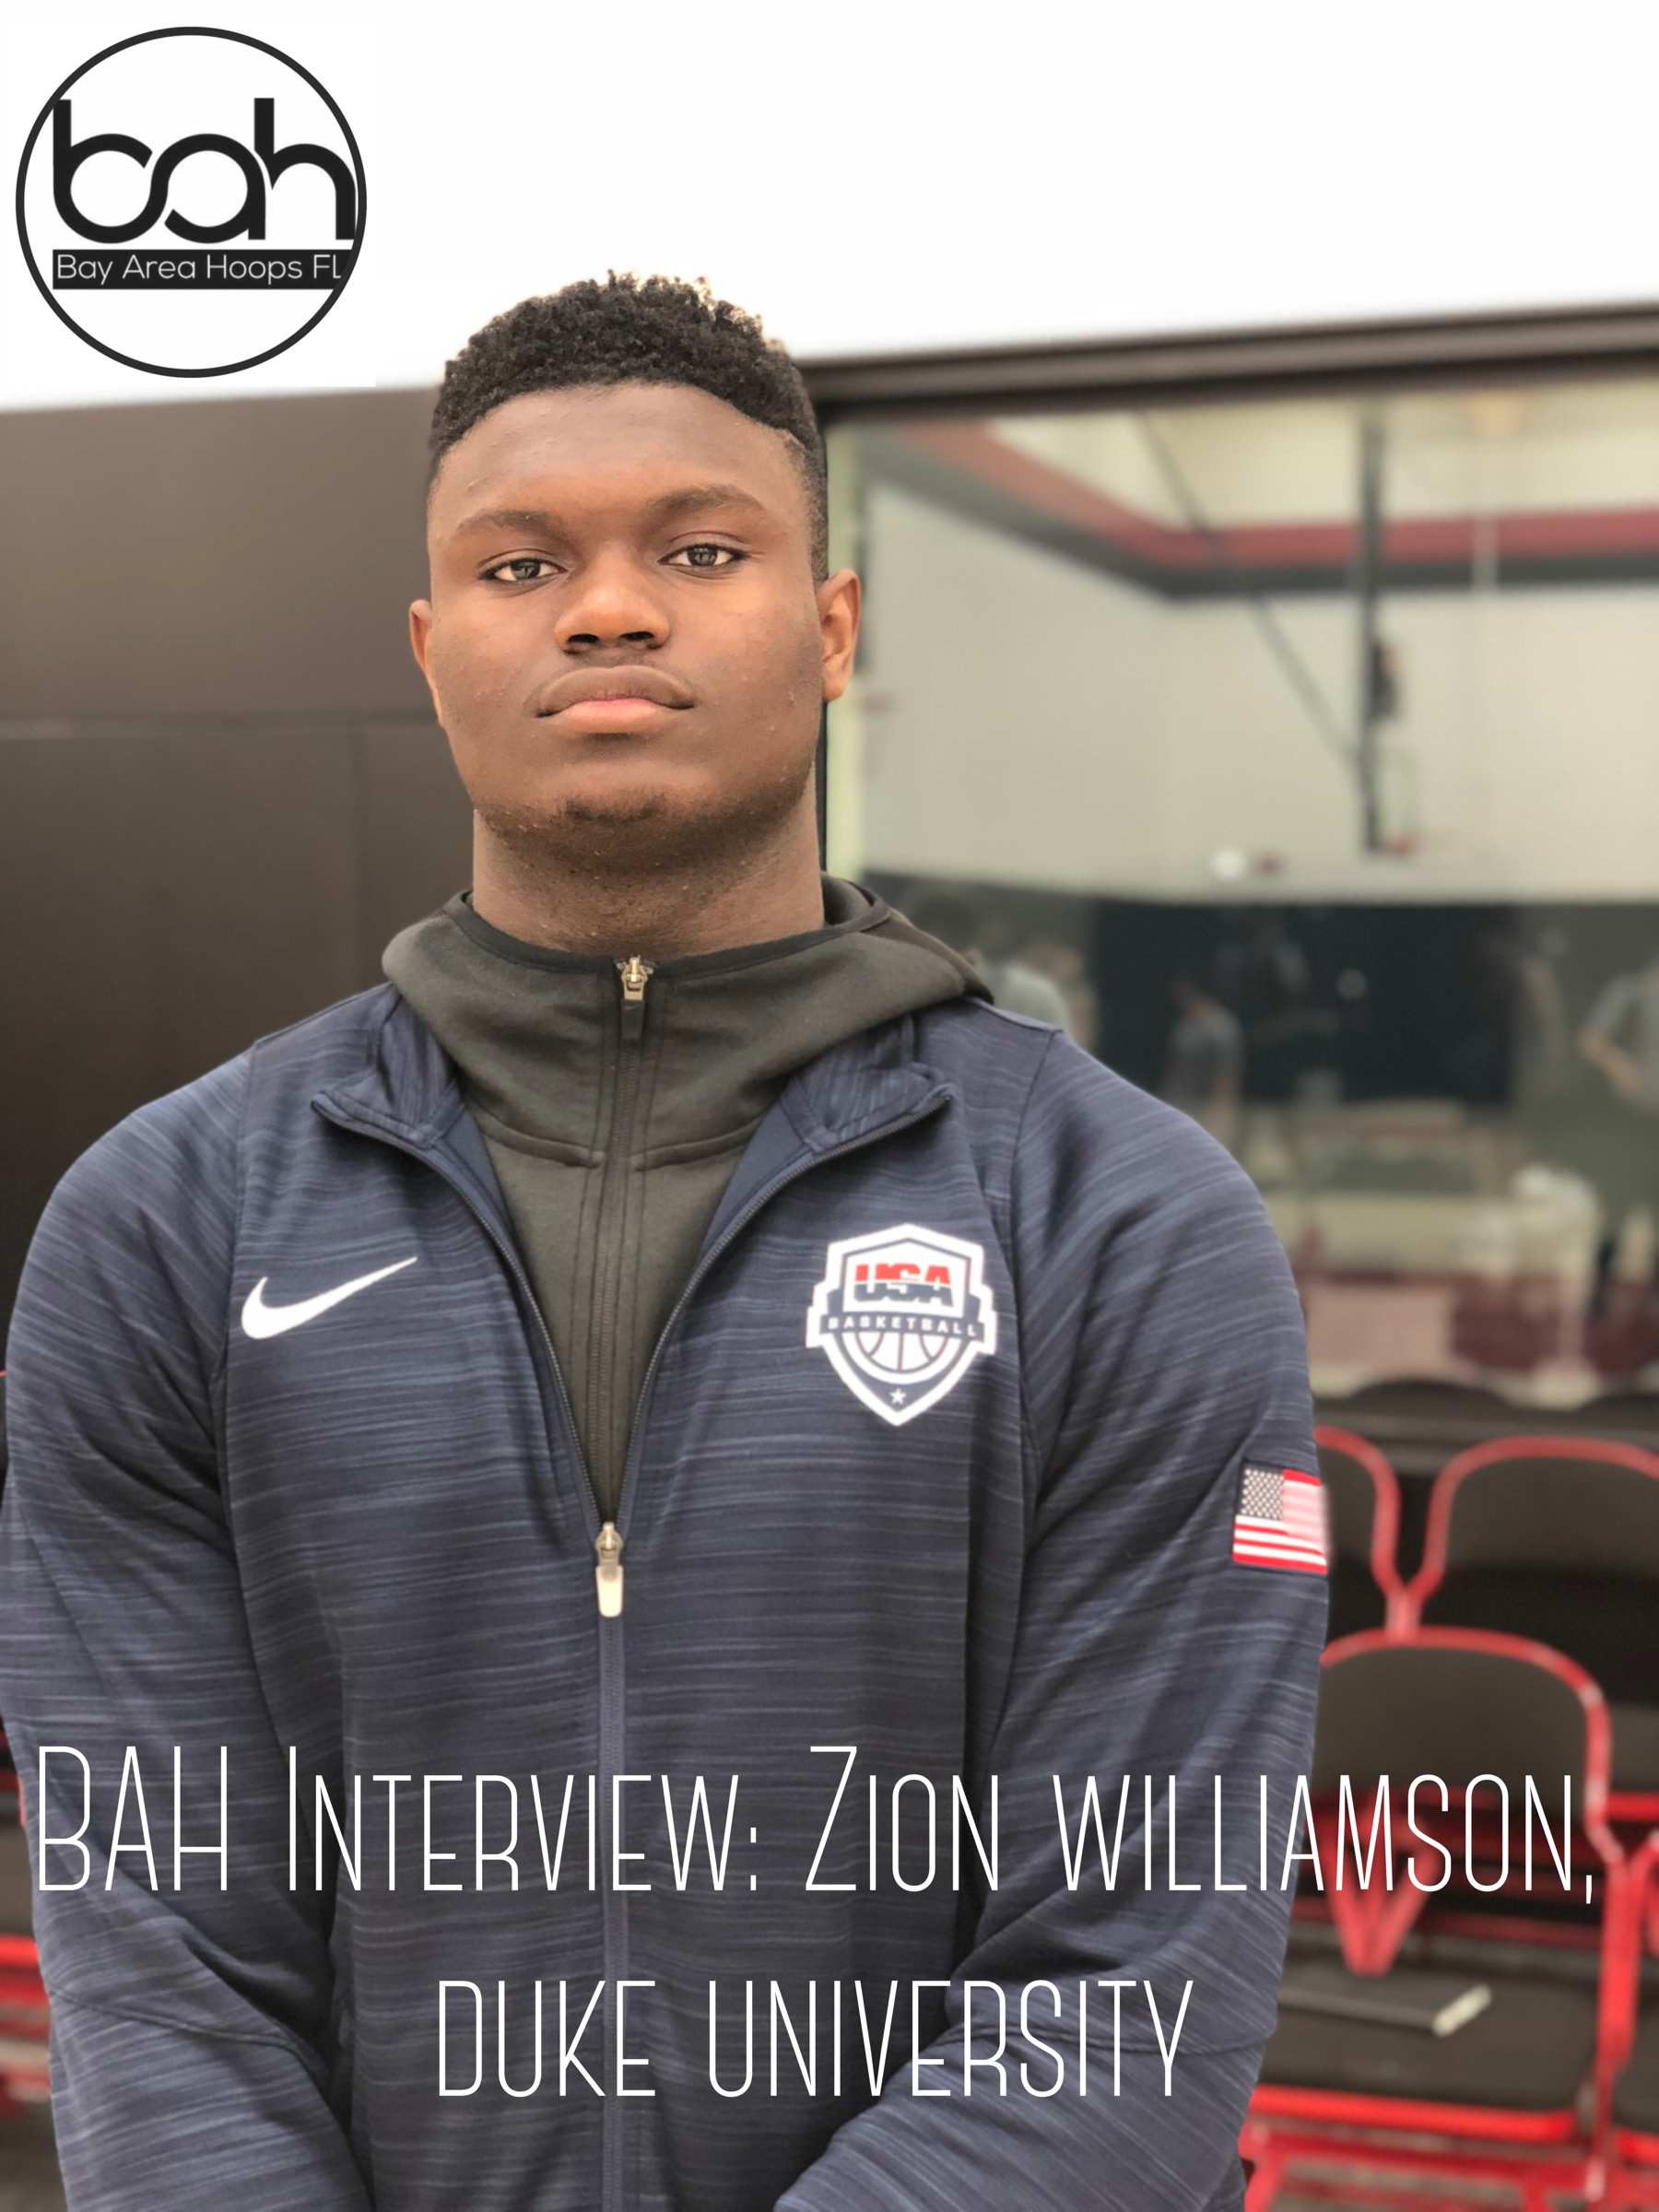 BAH Interview: Zion Williamson